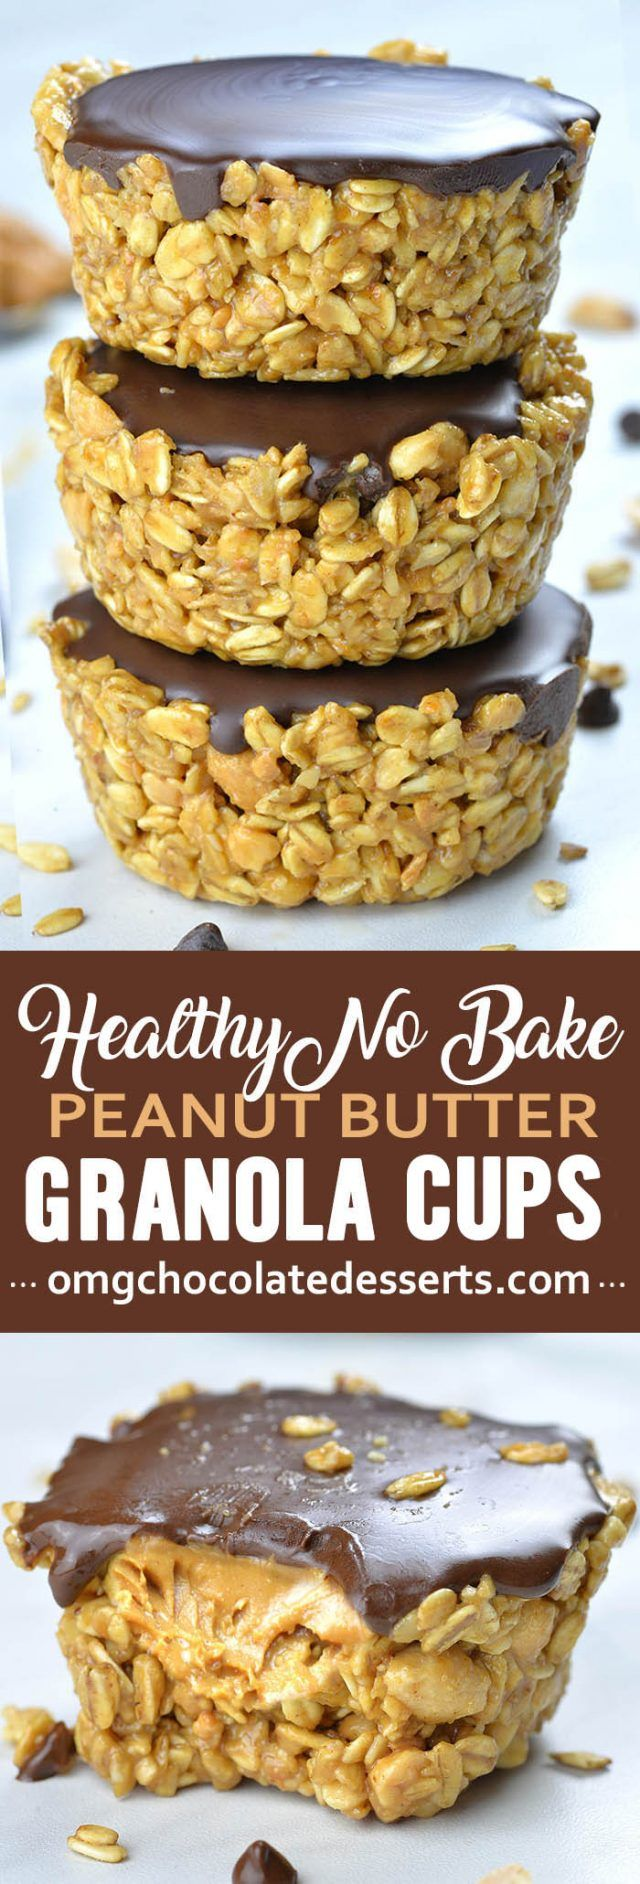 Photo of No Bake Peanut Butter Granola Cups